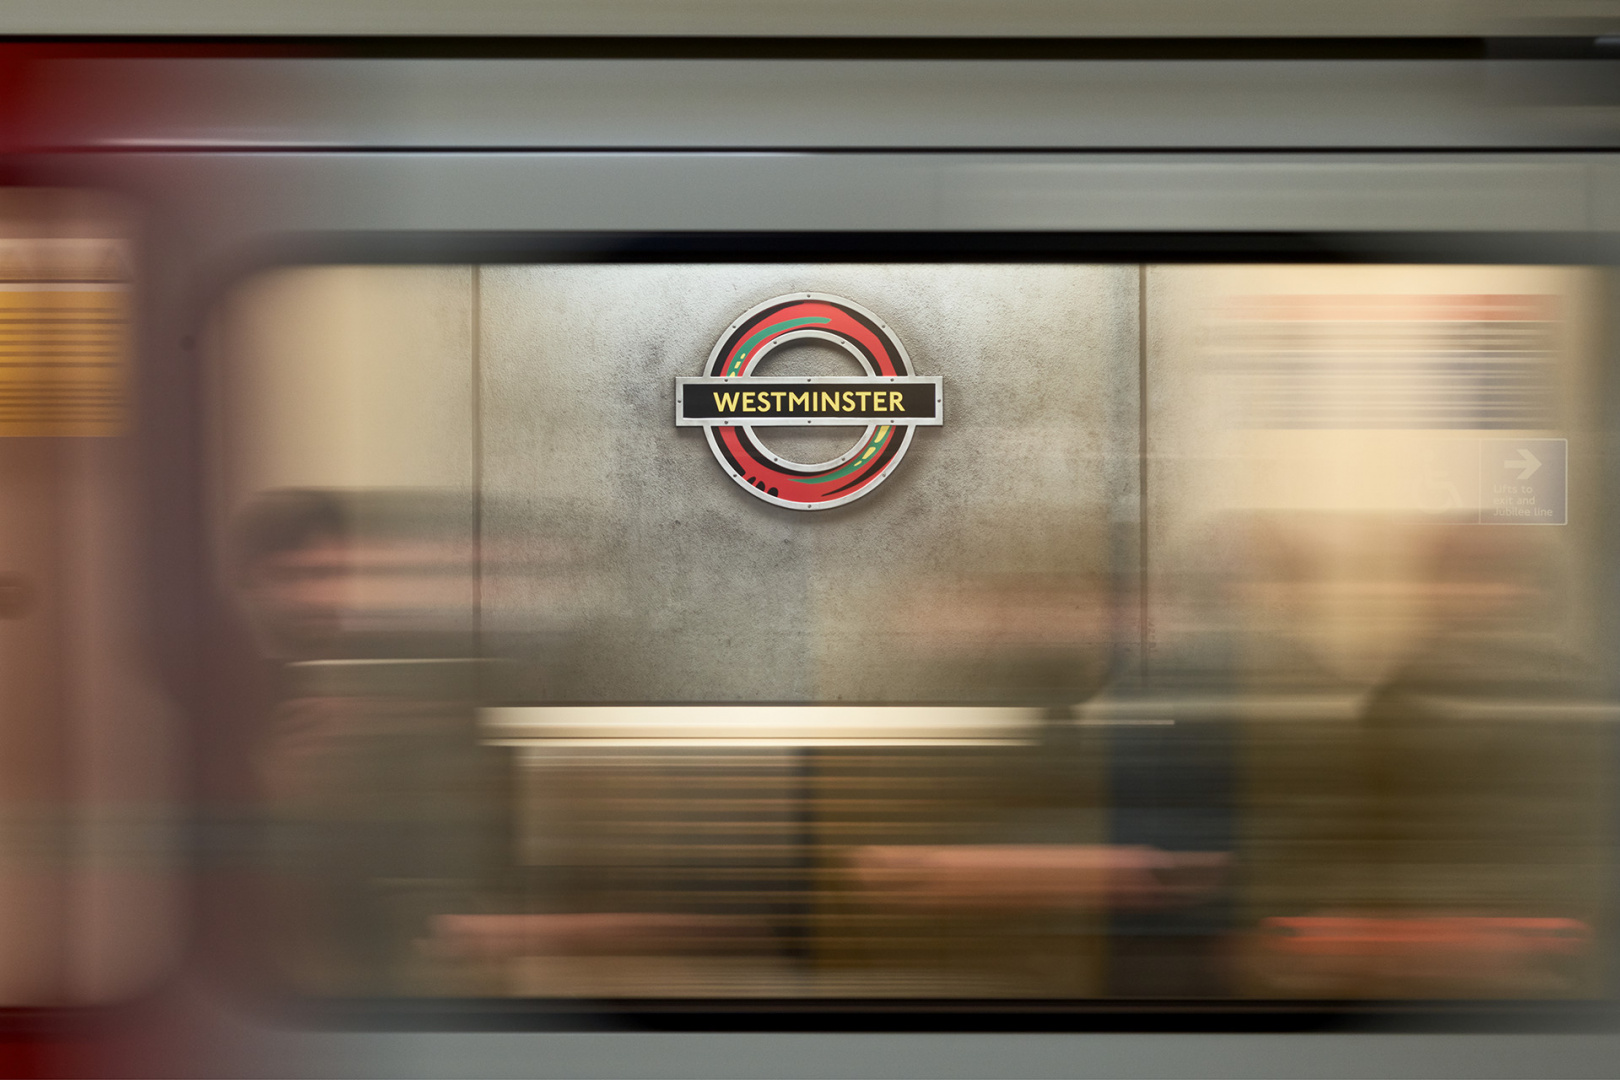 Westminster Tube roundel is reimagined by Larry Achiampong